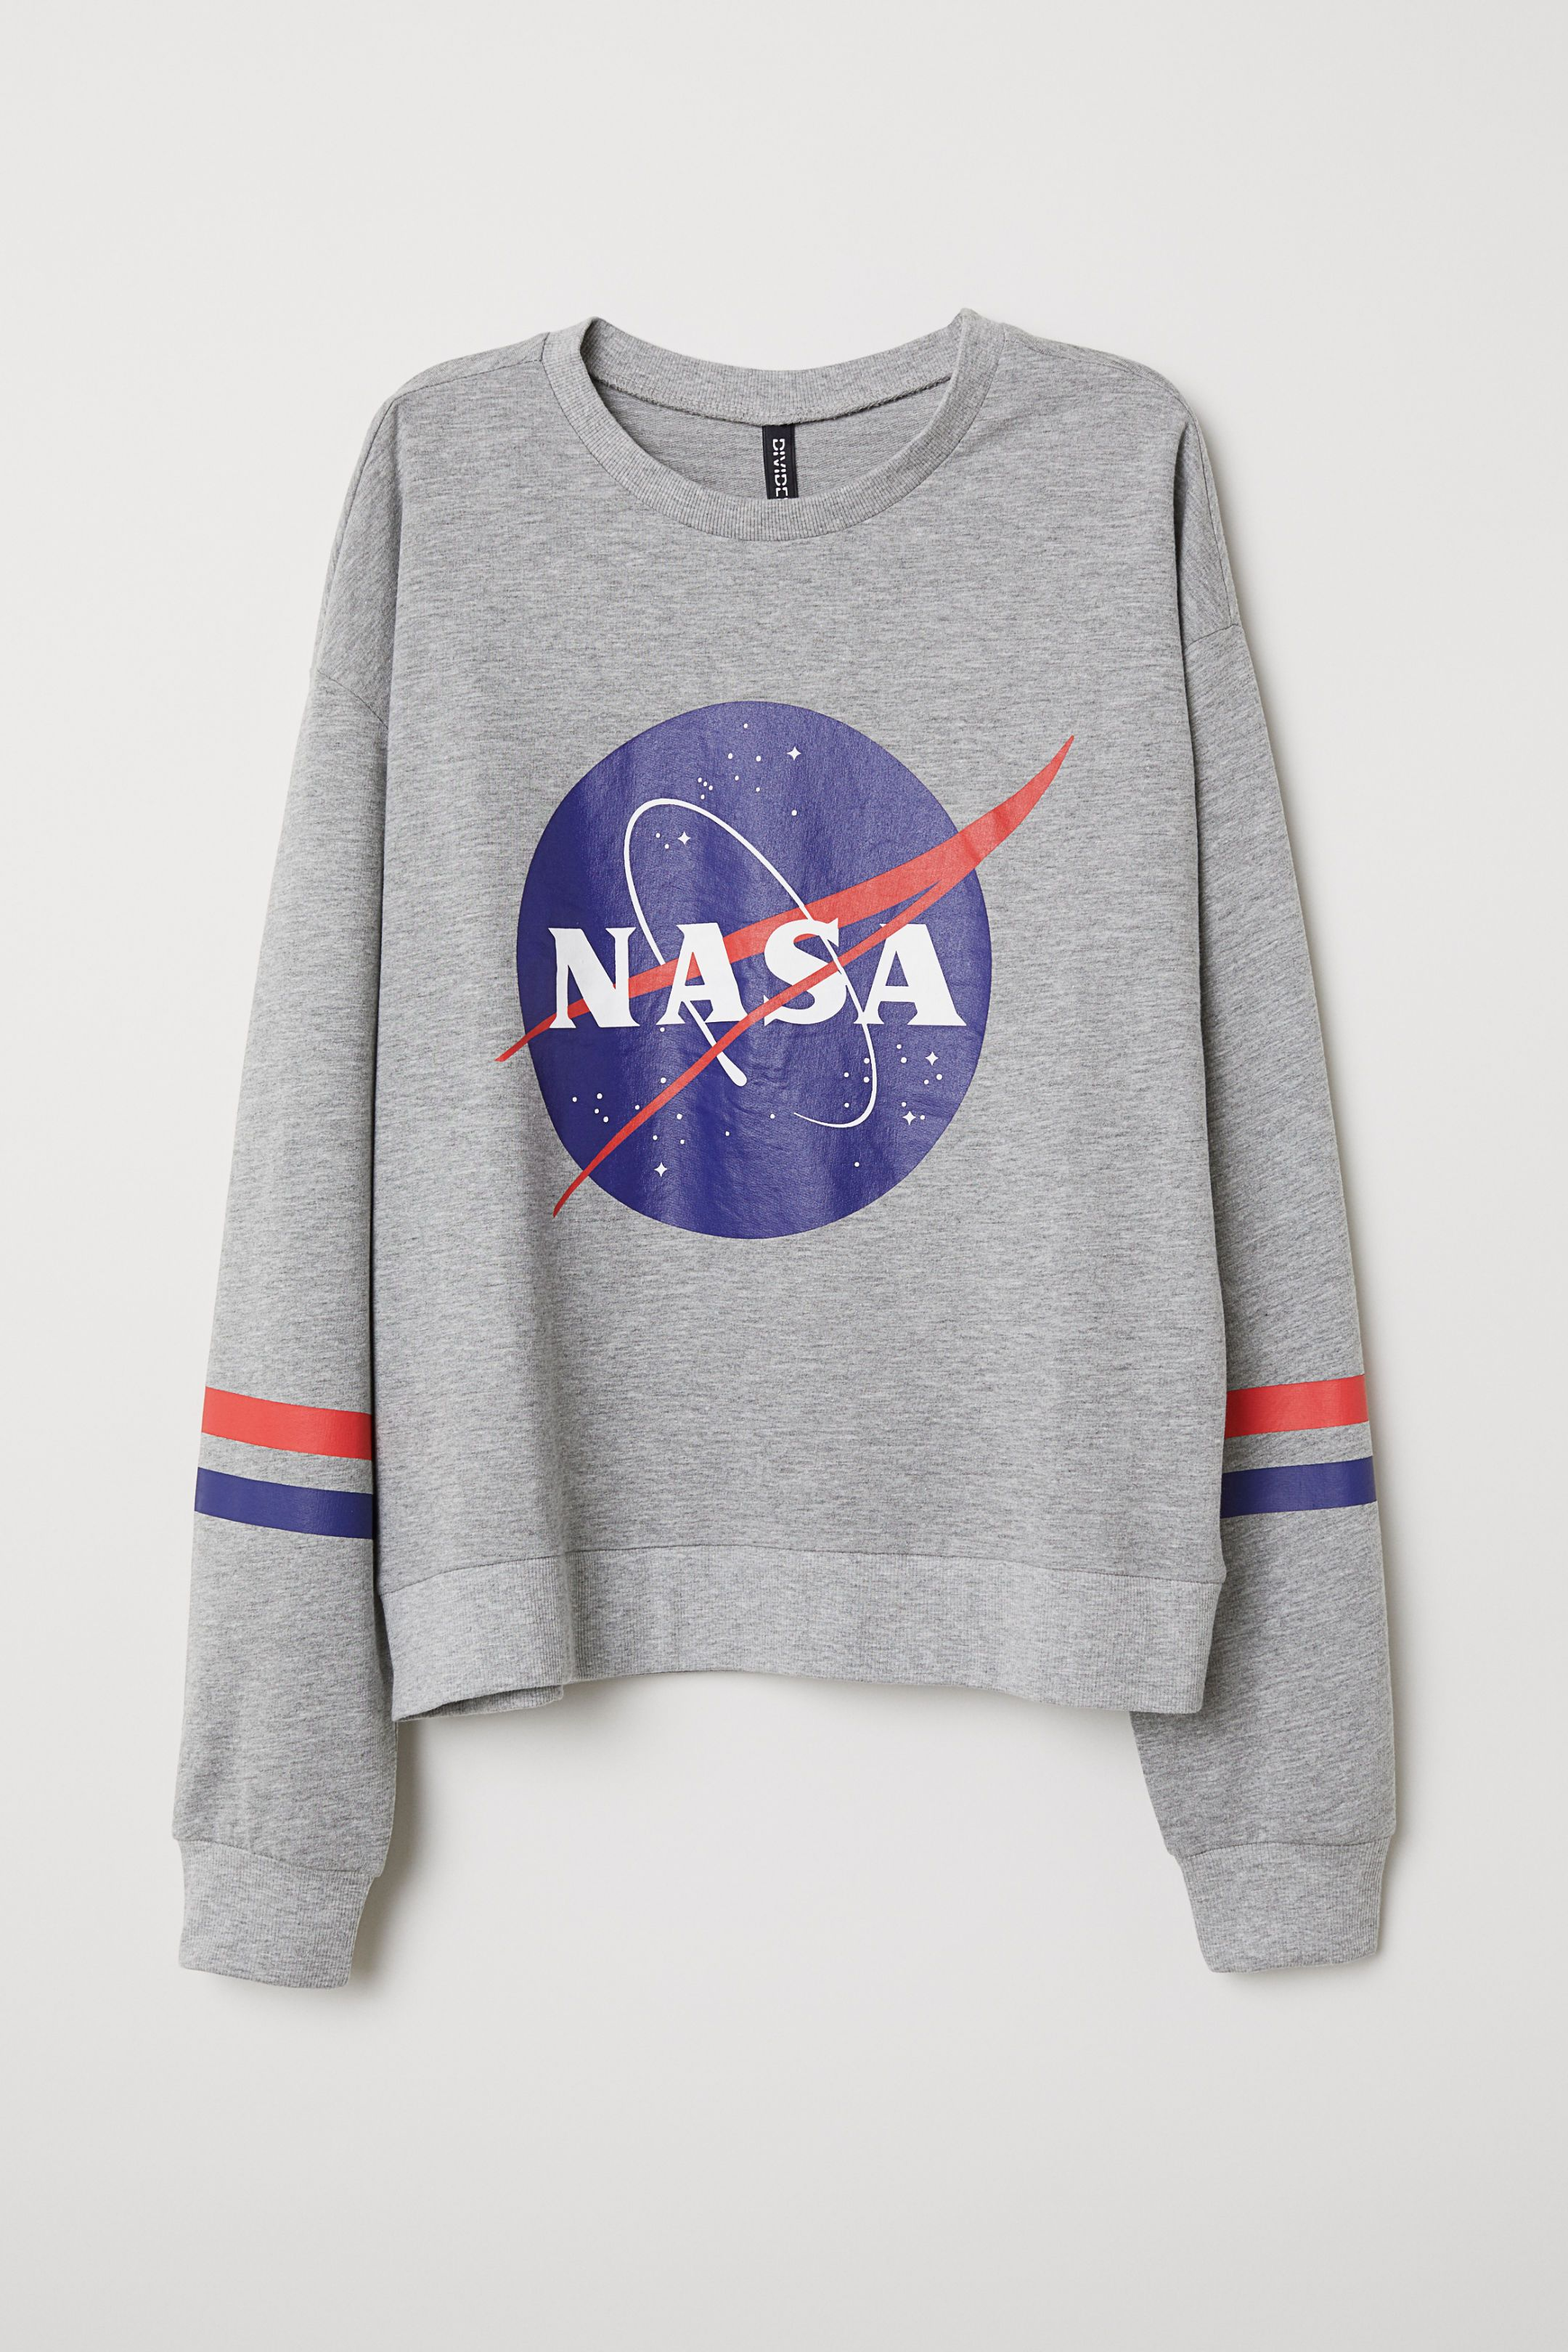 d56df50311c0 Sweatshirt with Printed Design in 2019